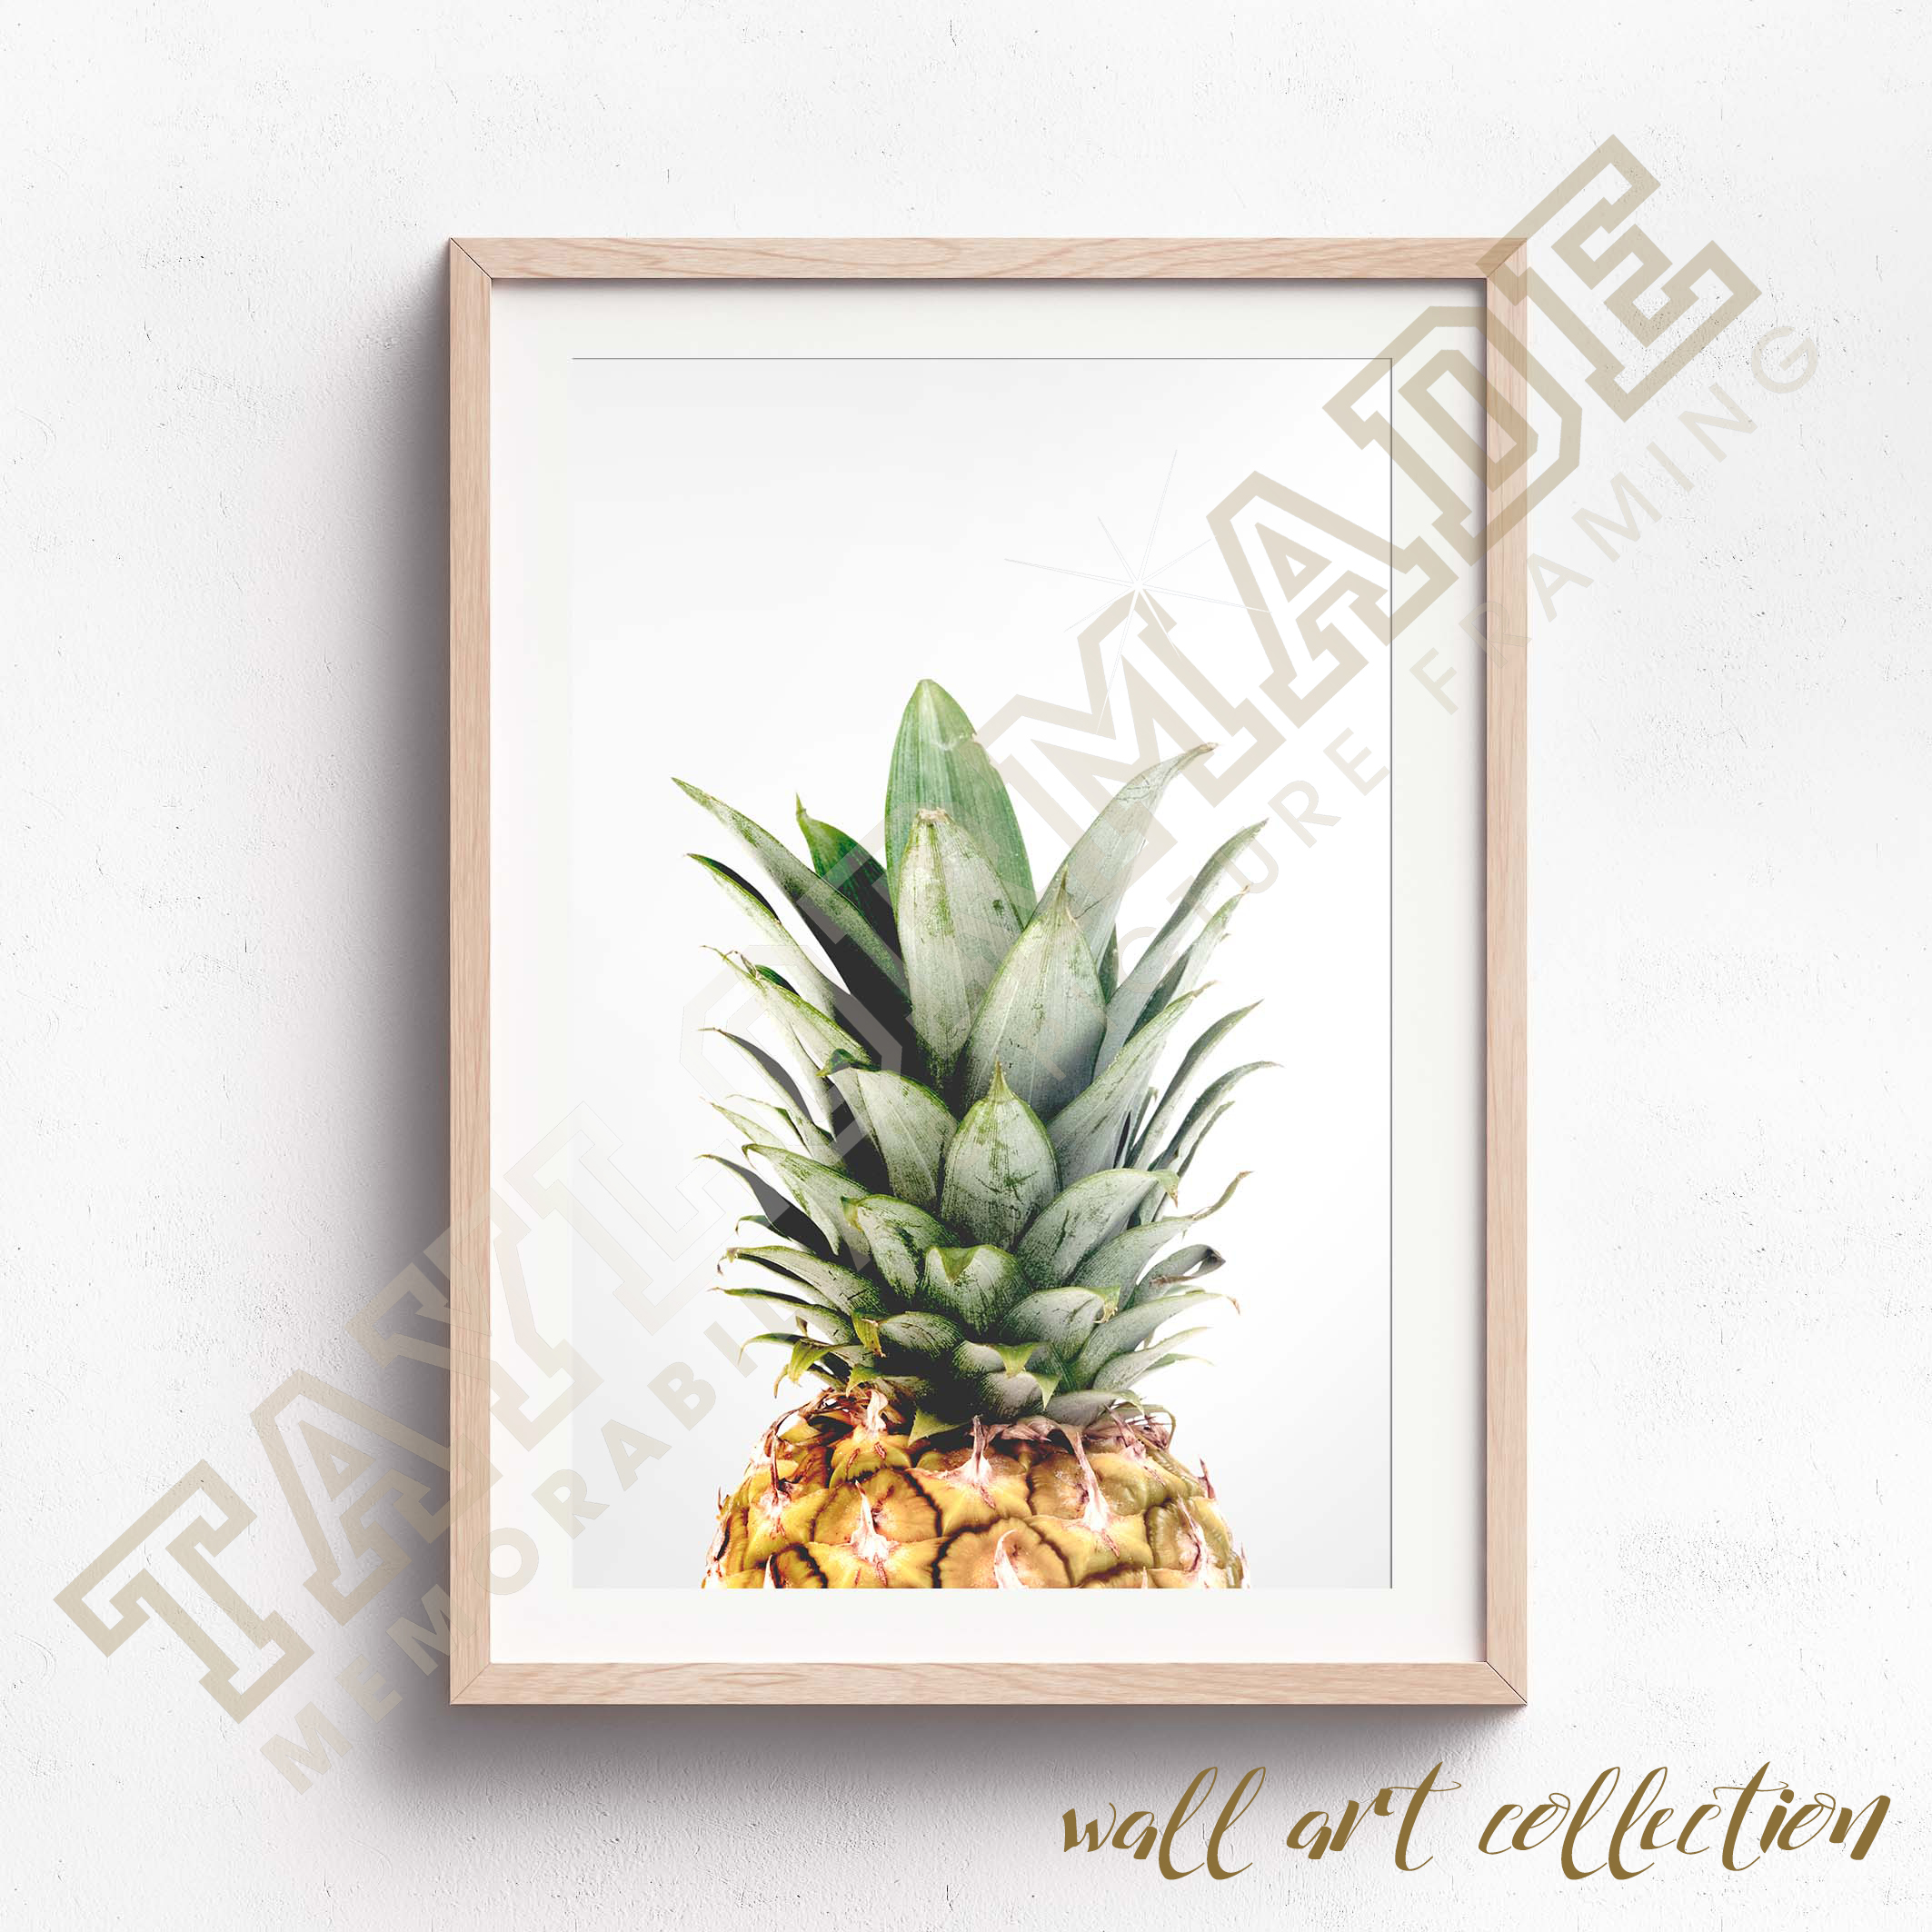 Wall Art Collection – Pineapple Top